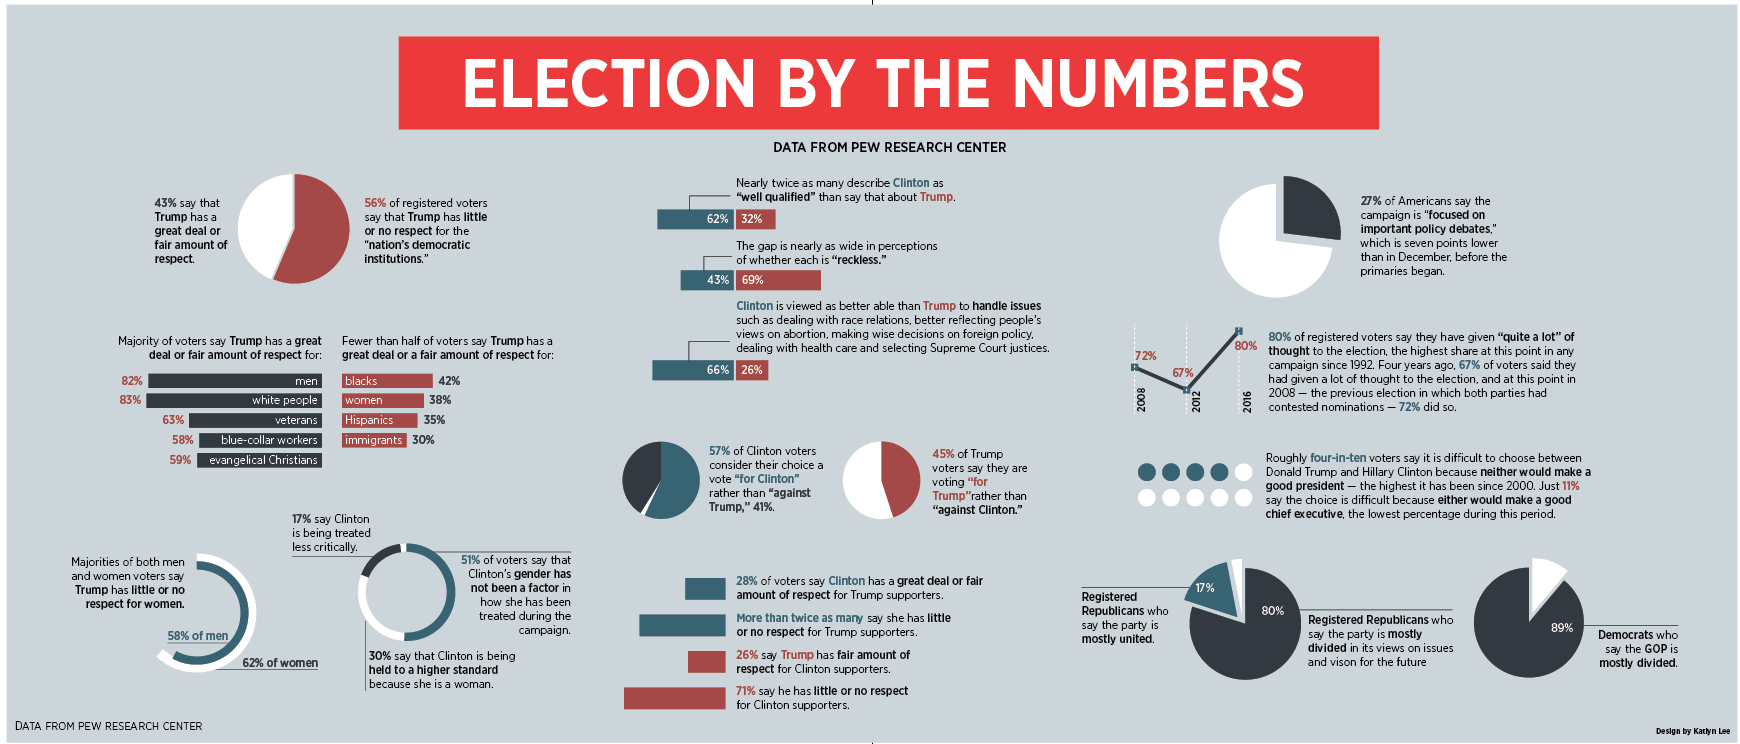 election-by-the-numbers